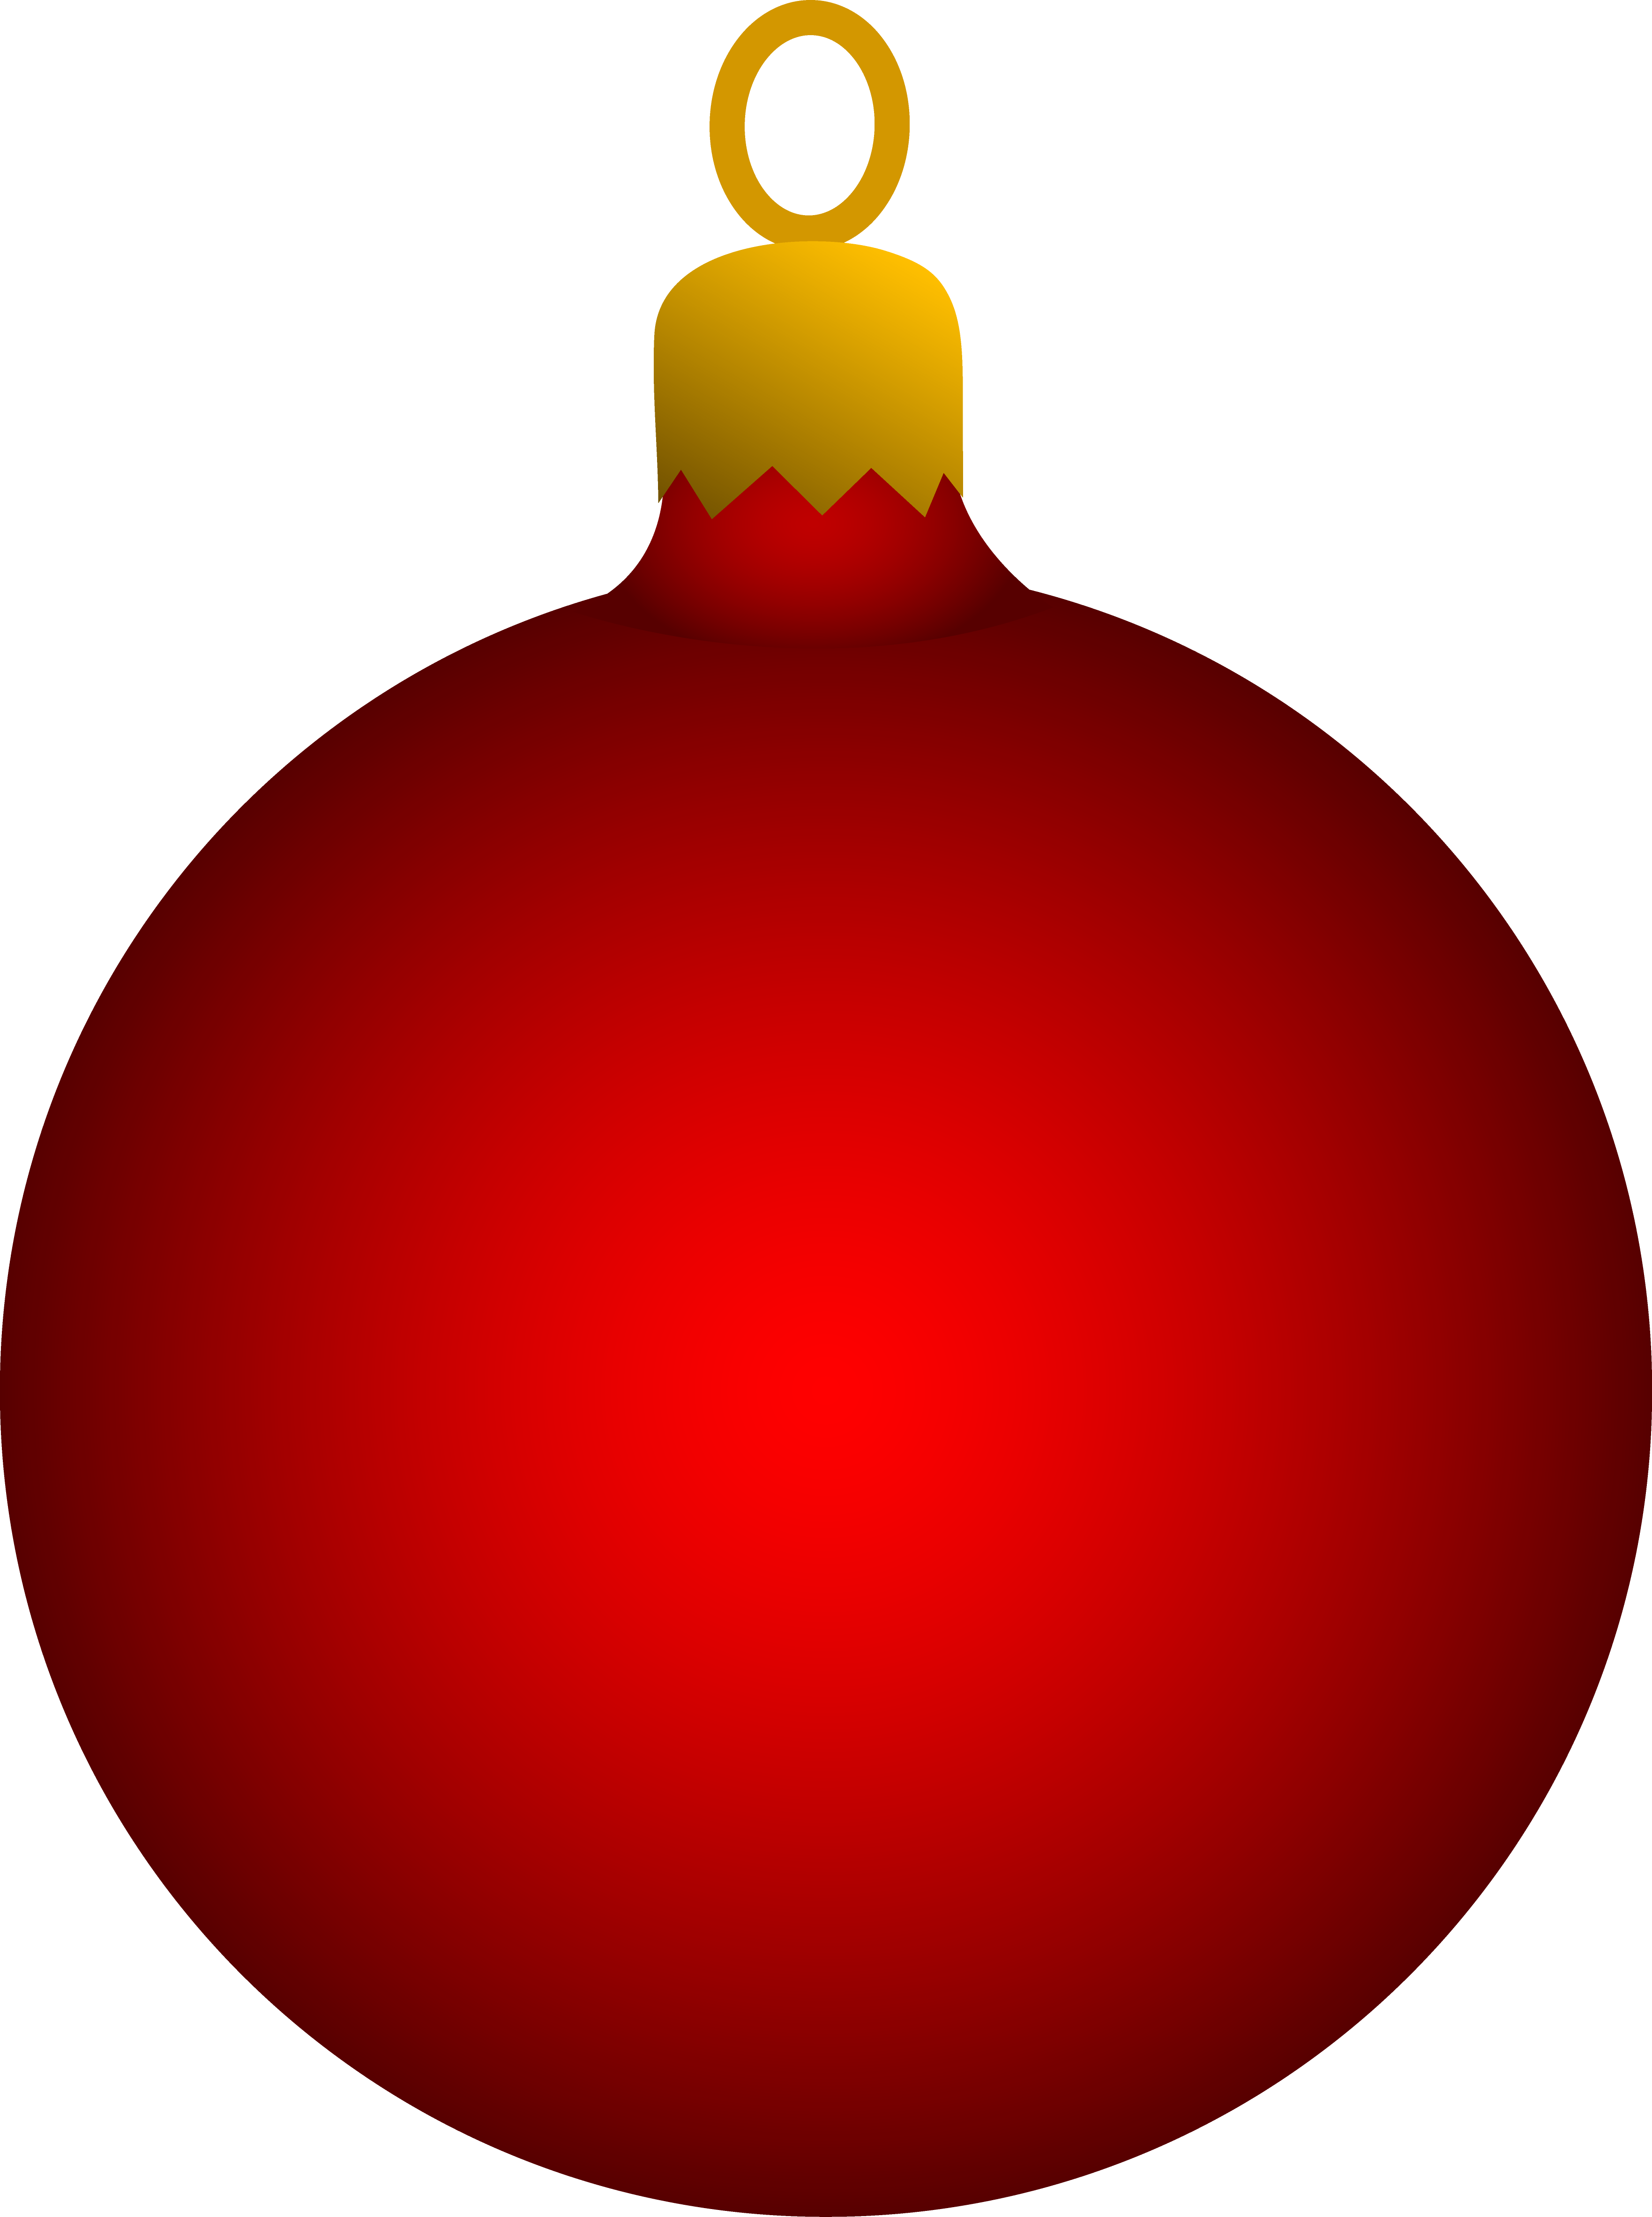 Christmas Ornament Clip Art Ornaments Clipart Library Free Images.